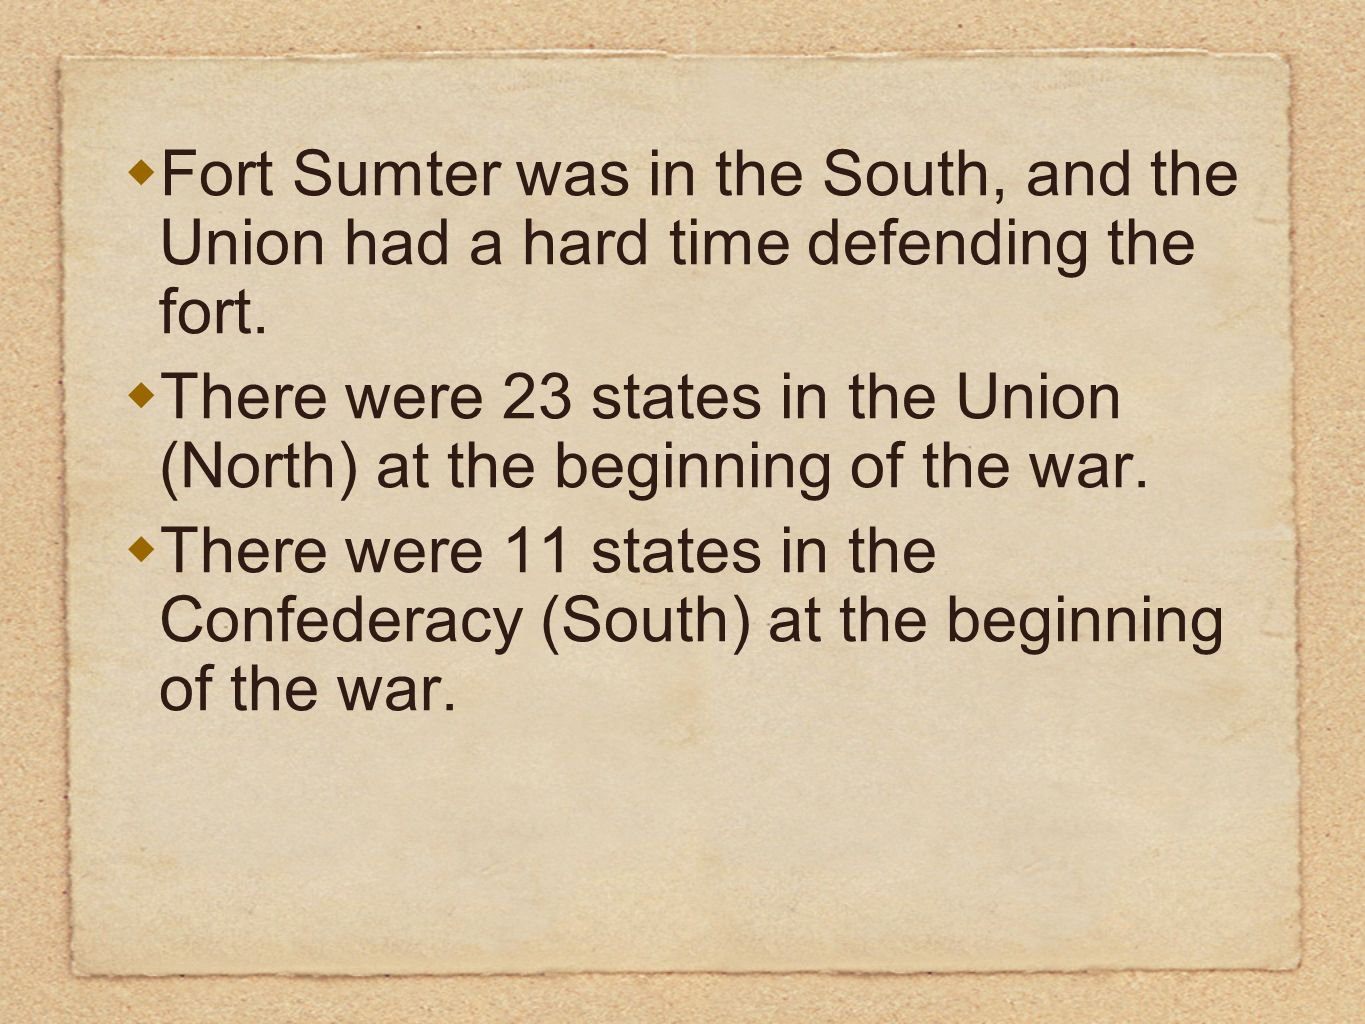 Fort Sumter was in the South, and the Union had a hard time defending the fort. There were 23 states in the Union (North) at the beginning of the war.